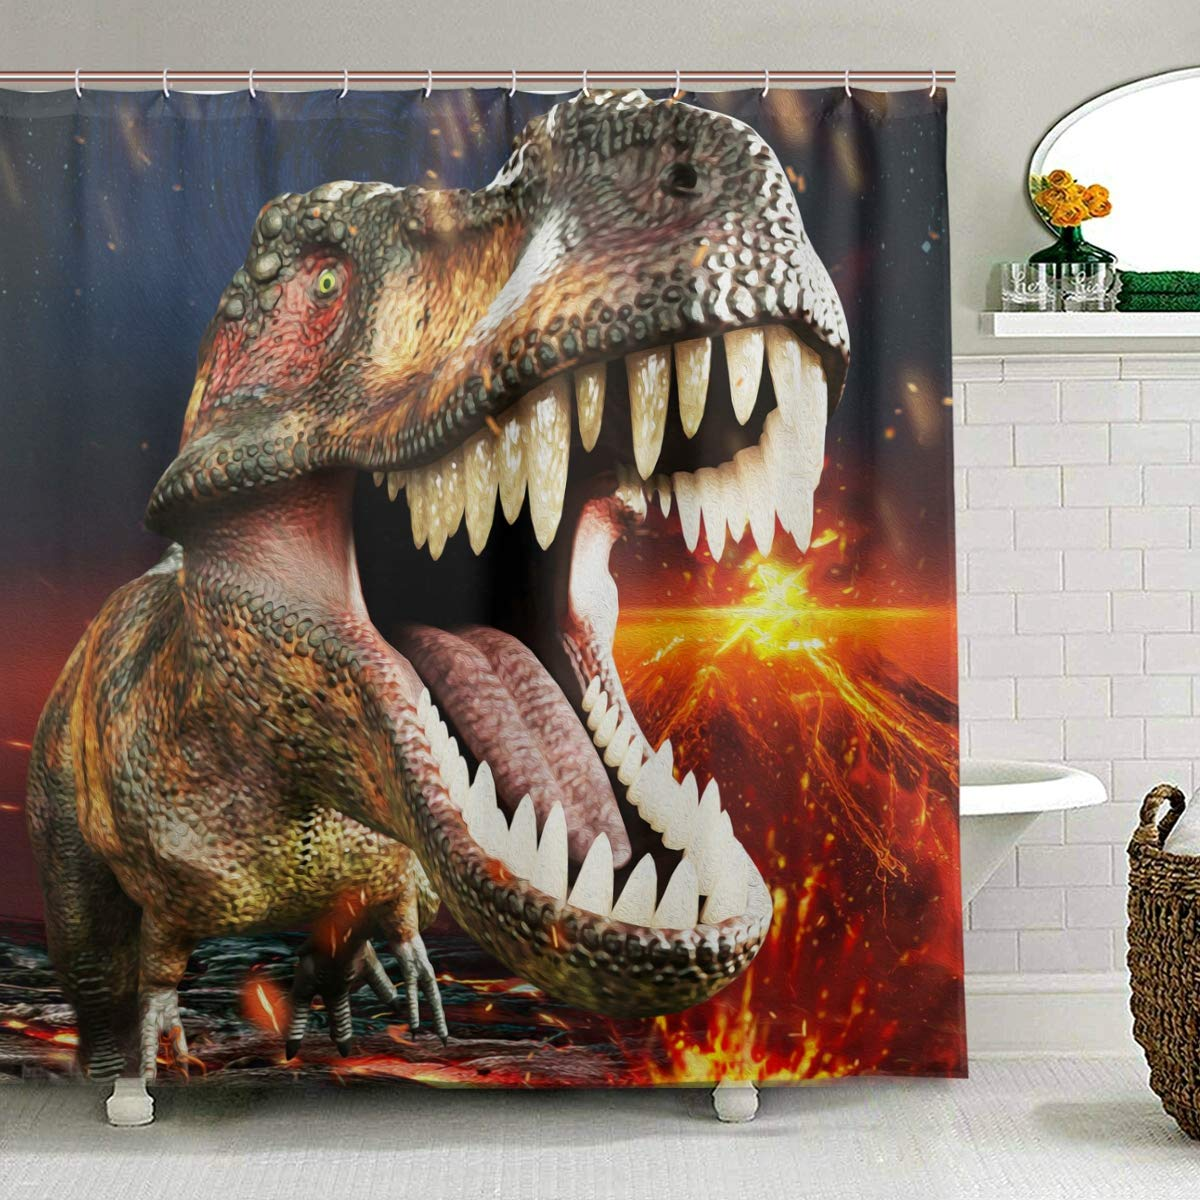 ZOEO Boys Dinosaur Shower Curtain 3D T-Rex Bathroom Curtains Fabric Large Window Tub Sets Waterproof Home Decor 12 Hooks for Men 72x72 inch